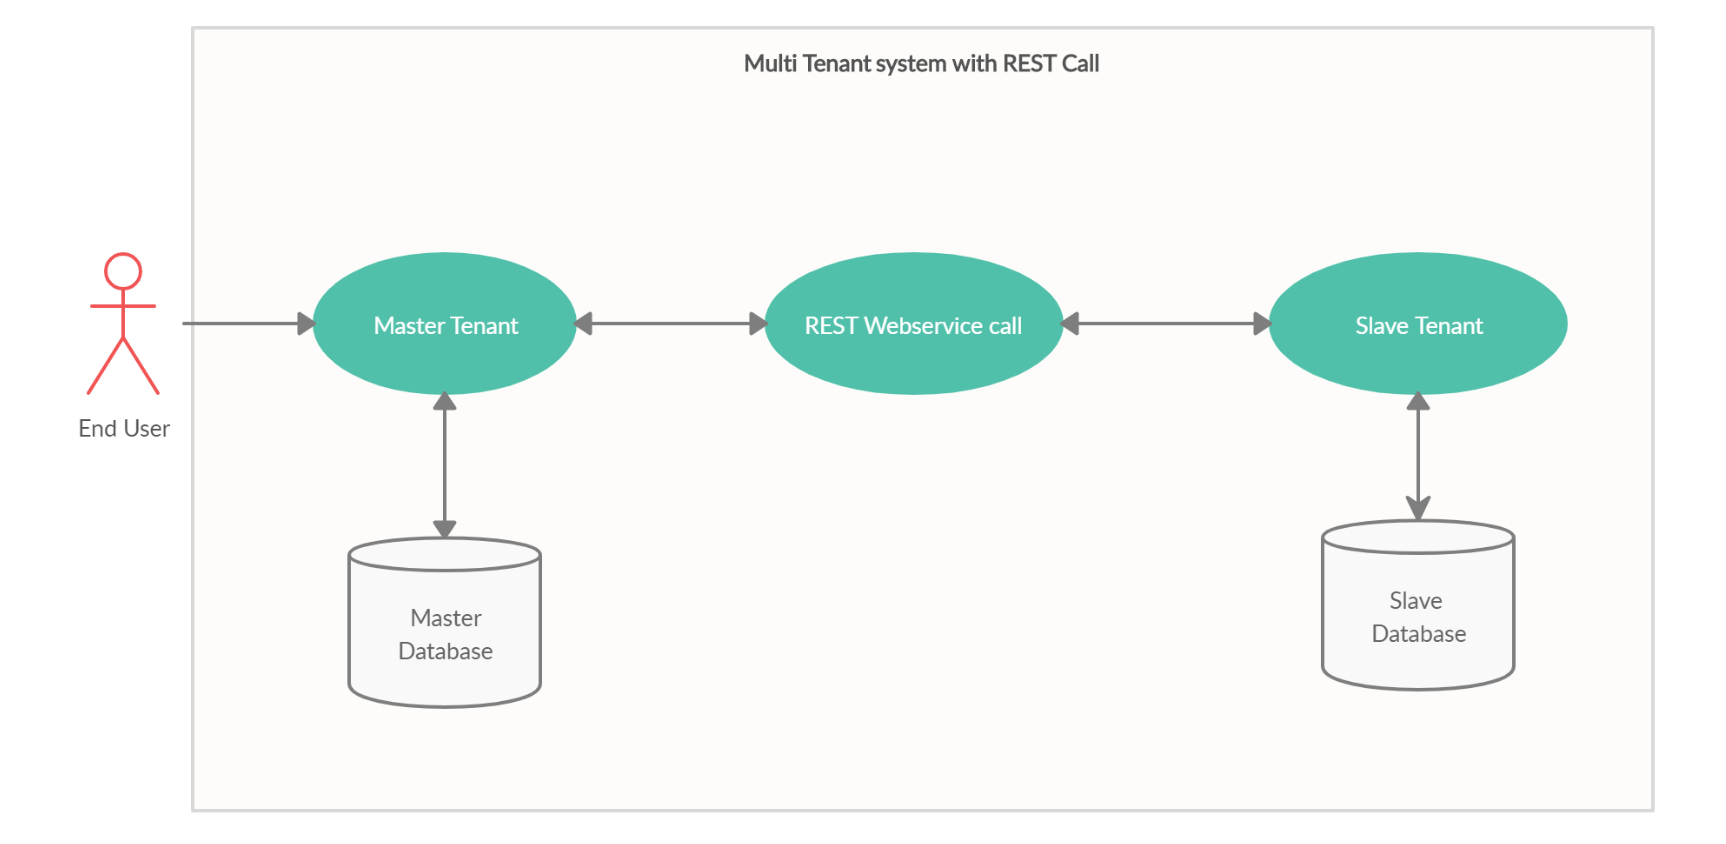 Multi tenant with REST call